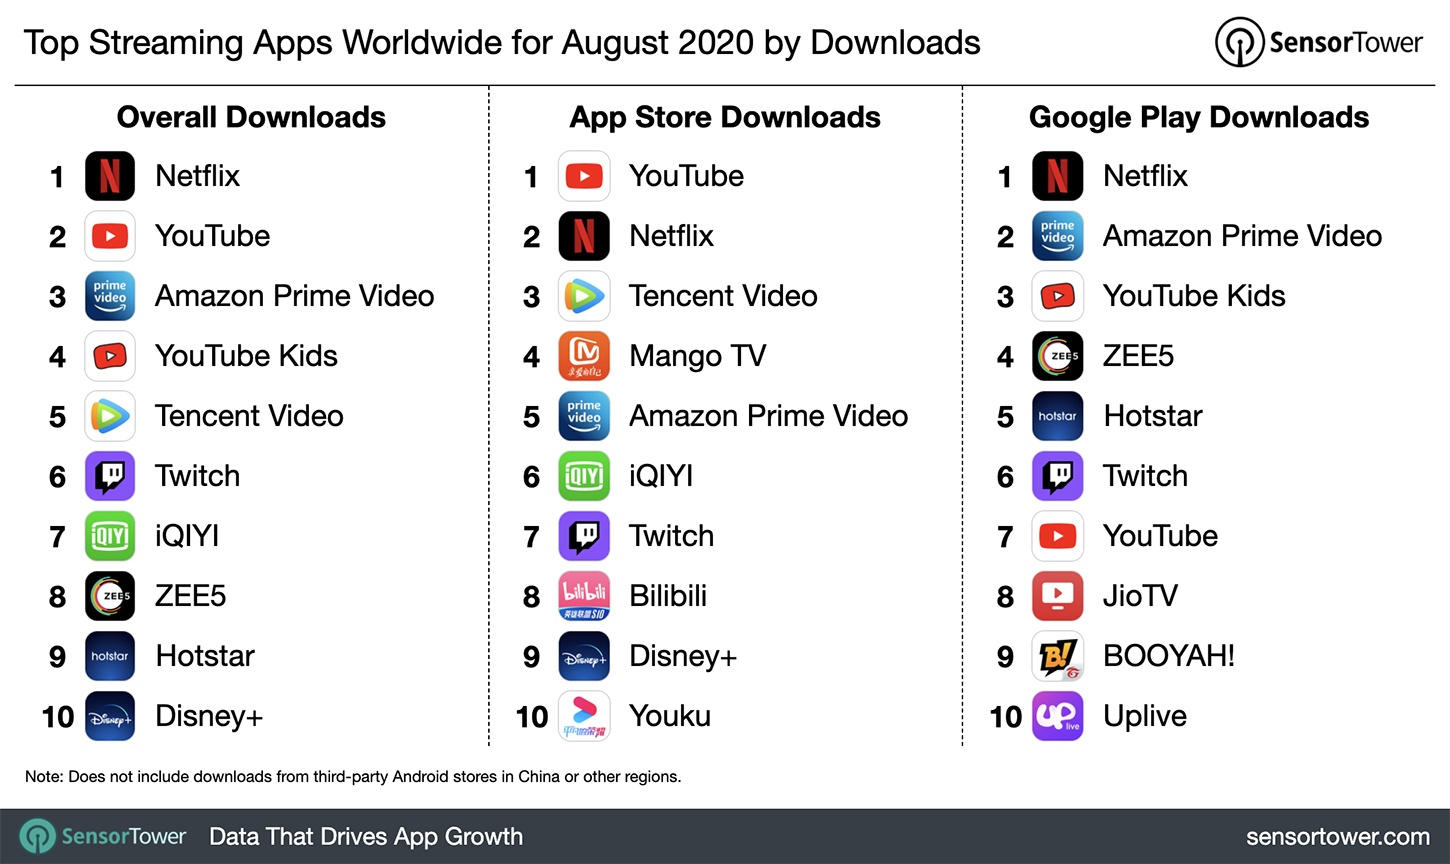 Top streaming apps, August 2020